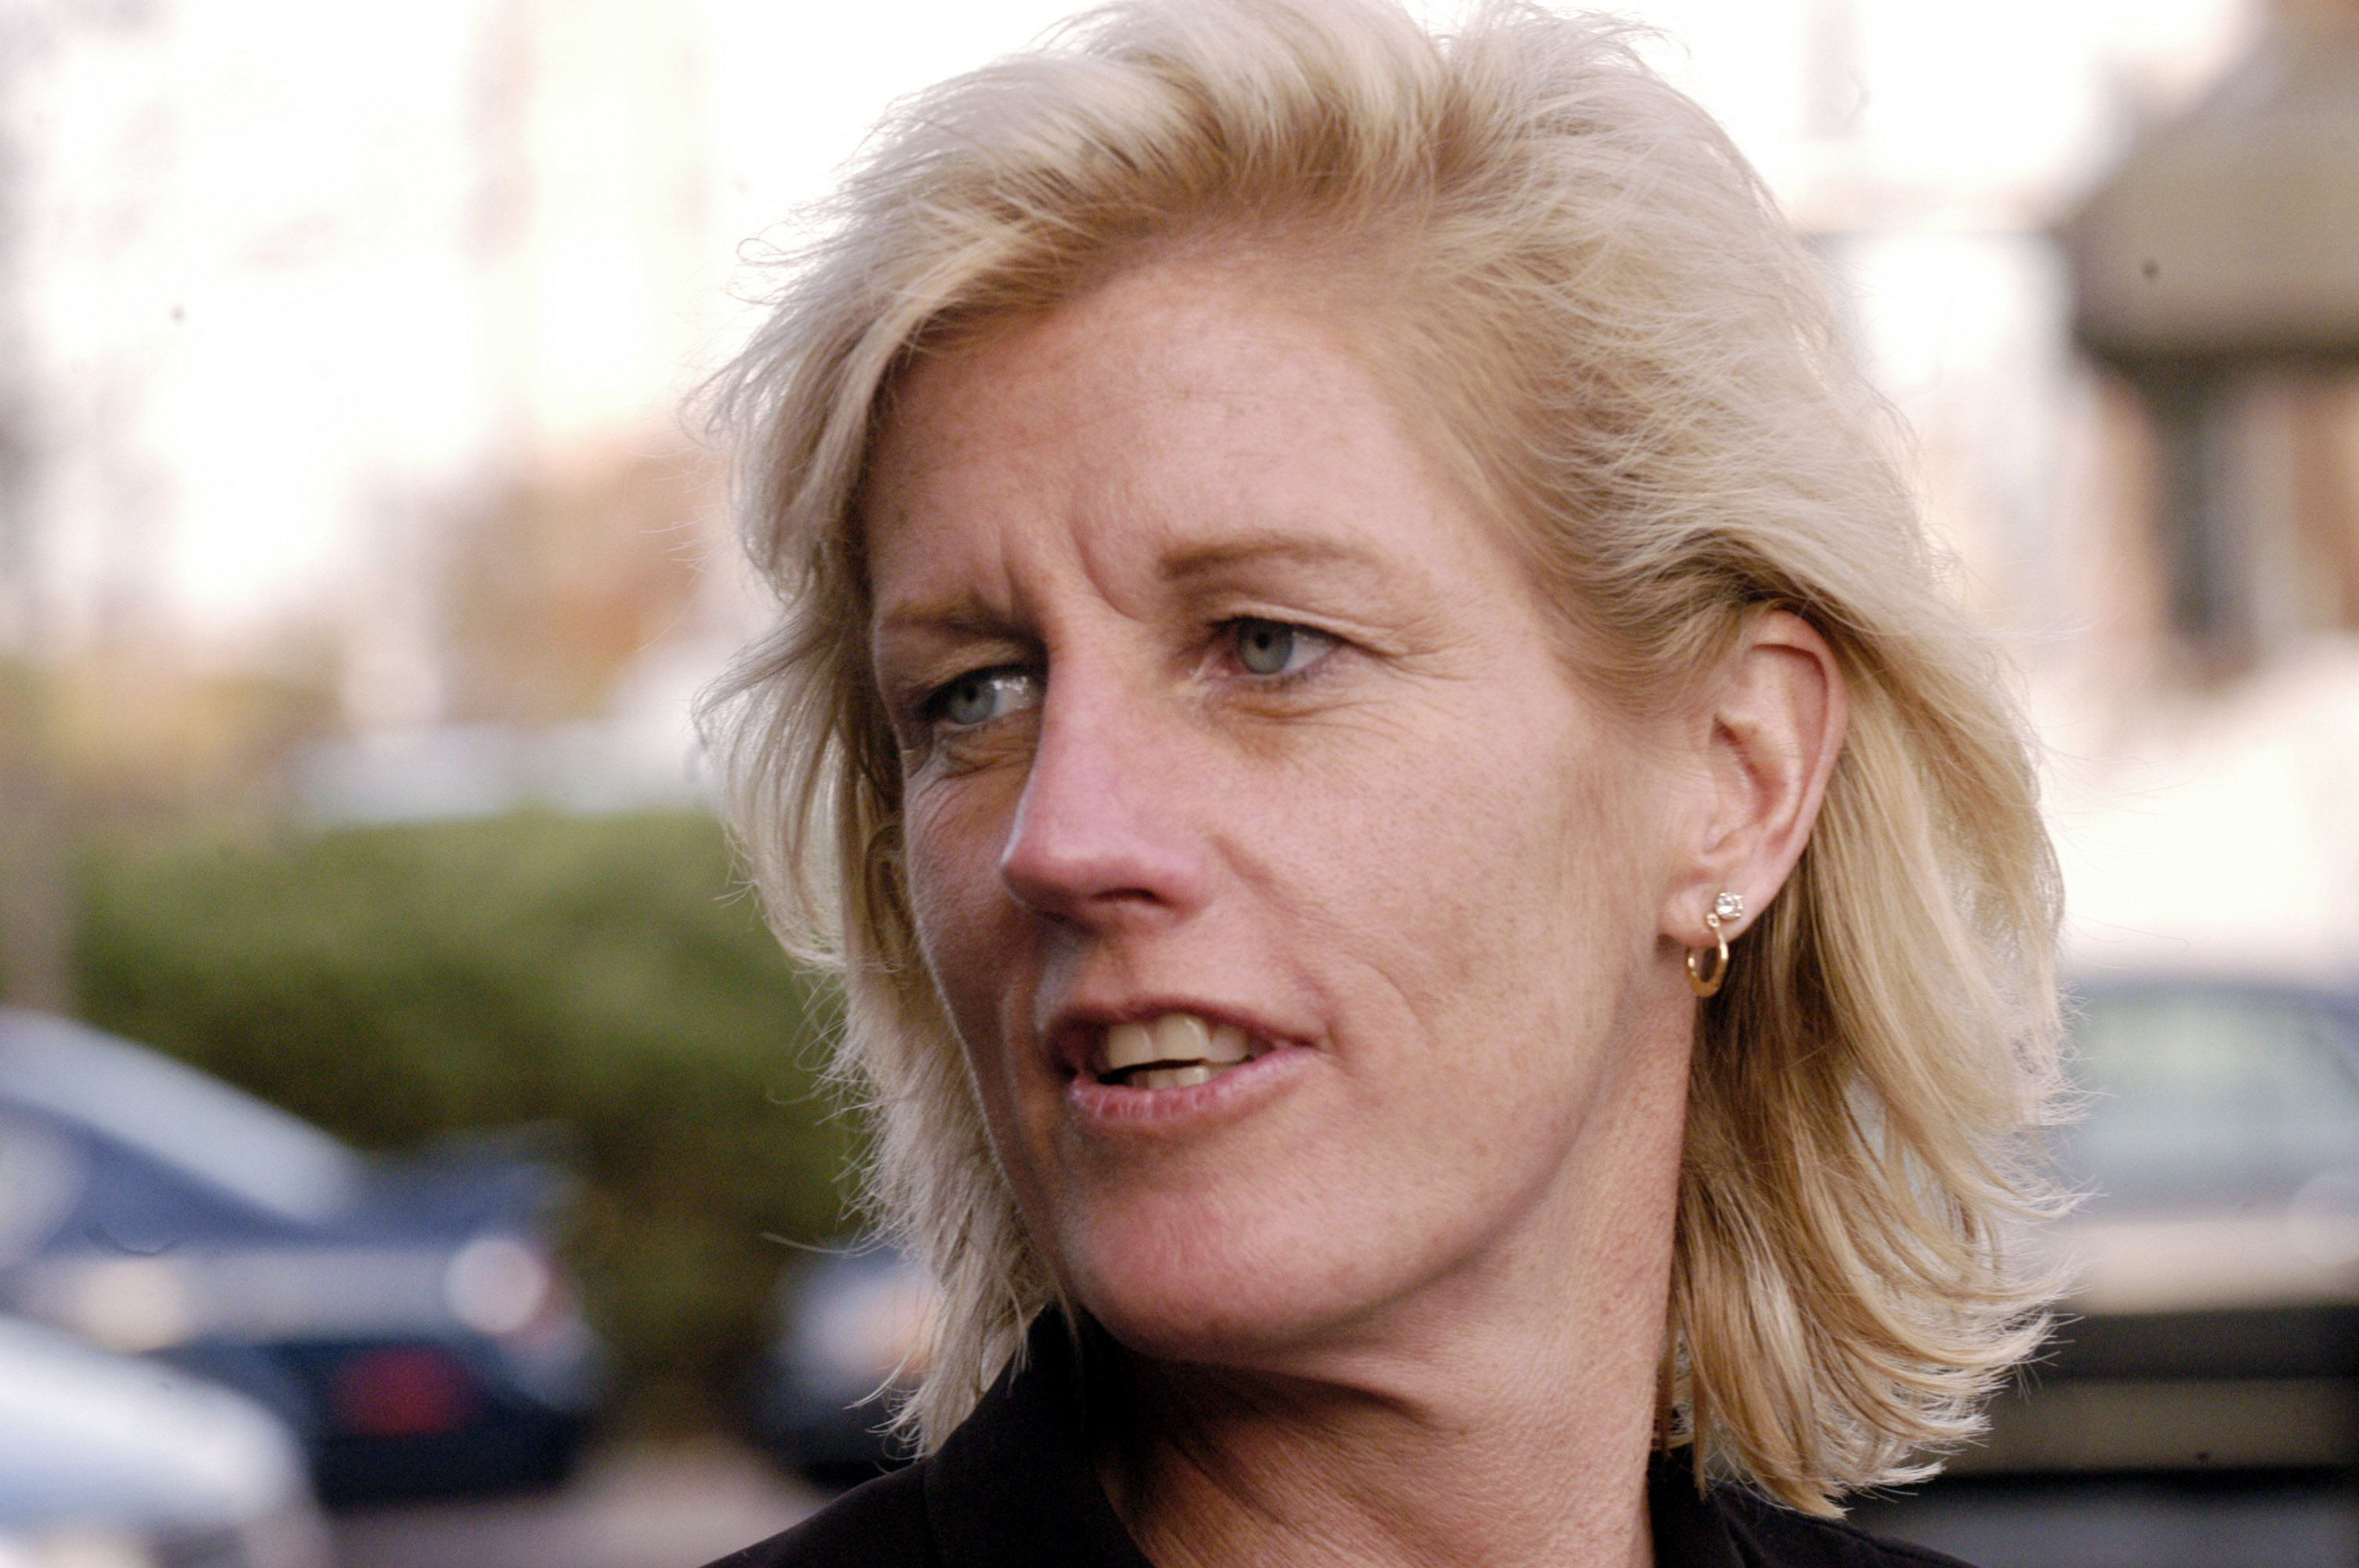 UNITED STATES - NOVEMBER 01:  Merck attorney Diane Sullivan leaves the Atlantic County Civil Court building in Atlantic City, New Jersey, Thursday, November 1, 2005. Deliberations have begun in the second trial over Merck & Co.'s Vioxx painkiller, as an Atlantic City, New Jersey jury weighs claims that the drug caused an ex-Marine's heart attack.  (Photo by Mike Mergen/Bloomberg via Getty Images)